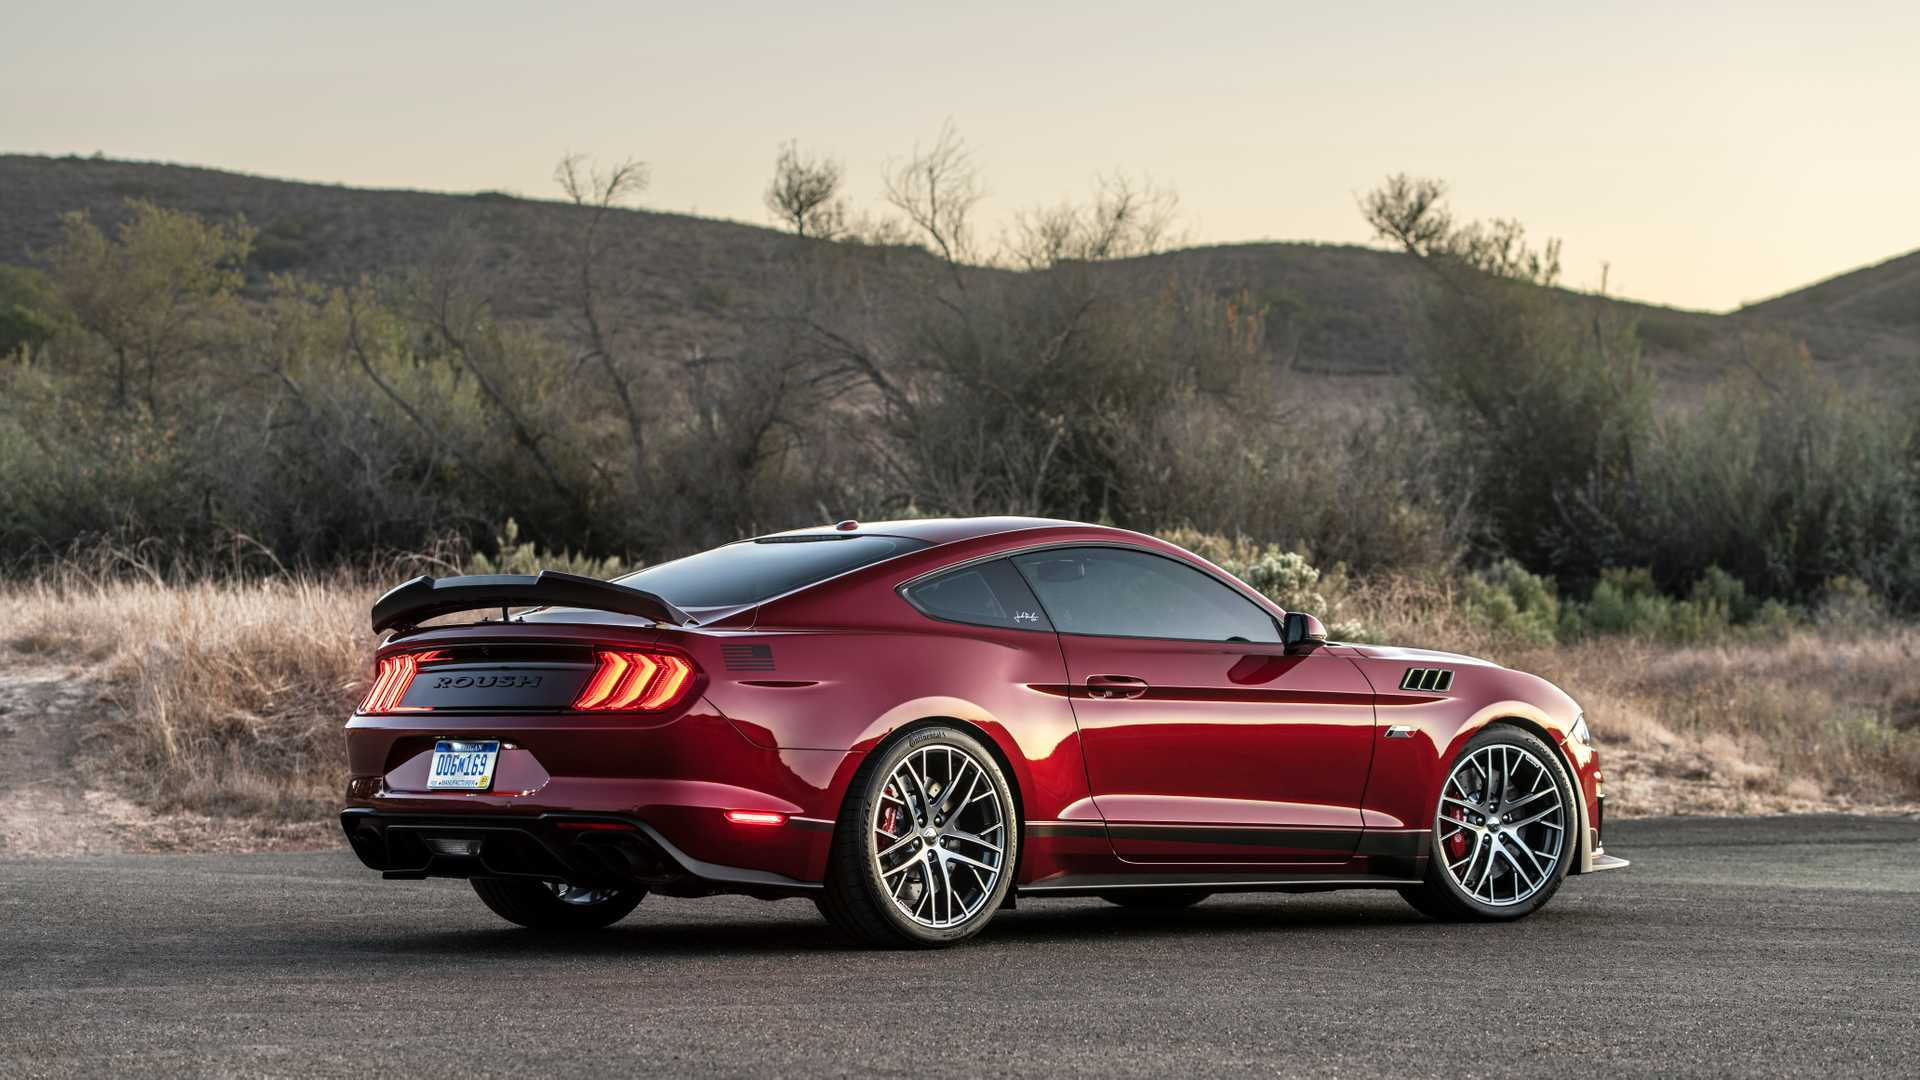 2020 Jack Roush Edition Mustang